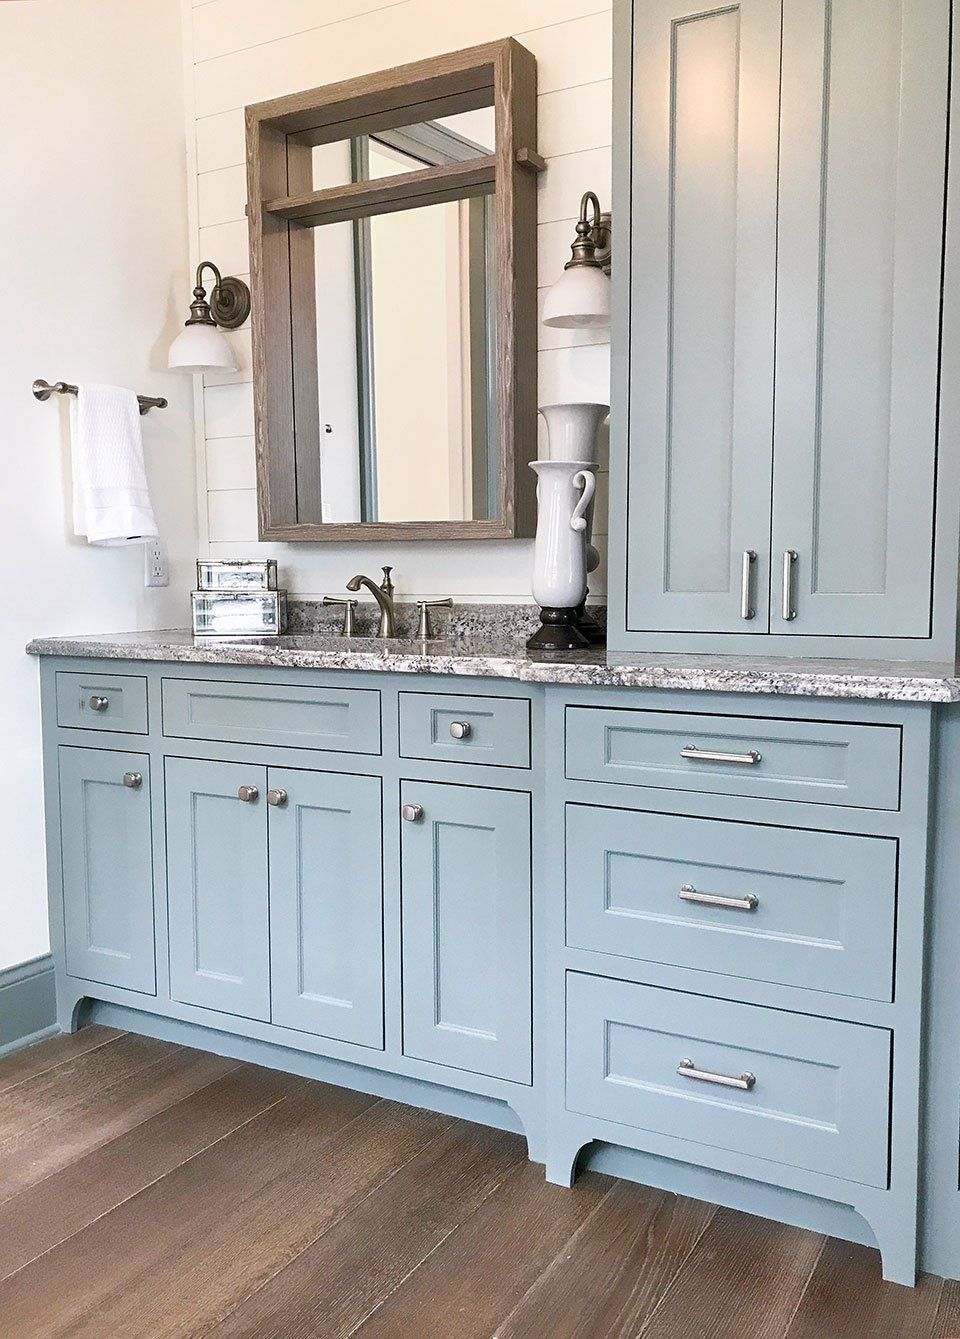 Artisan Tour Luxury Lake Cottage Bathroom With Shiplap And Blue Green Vanity Cottage Bathroom Cottage Bathroom Design Ideas Bathroom Interior Design